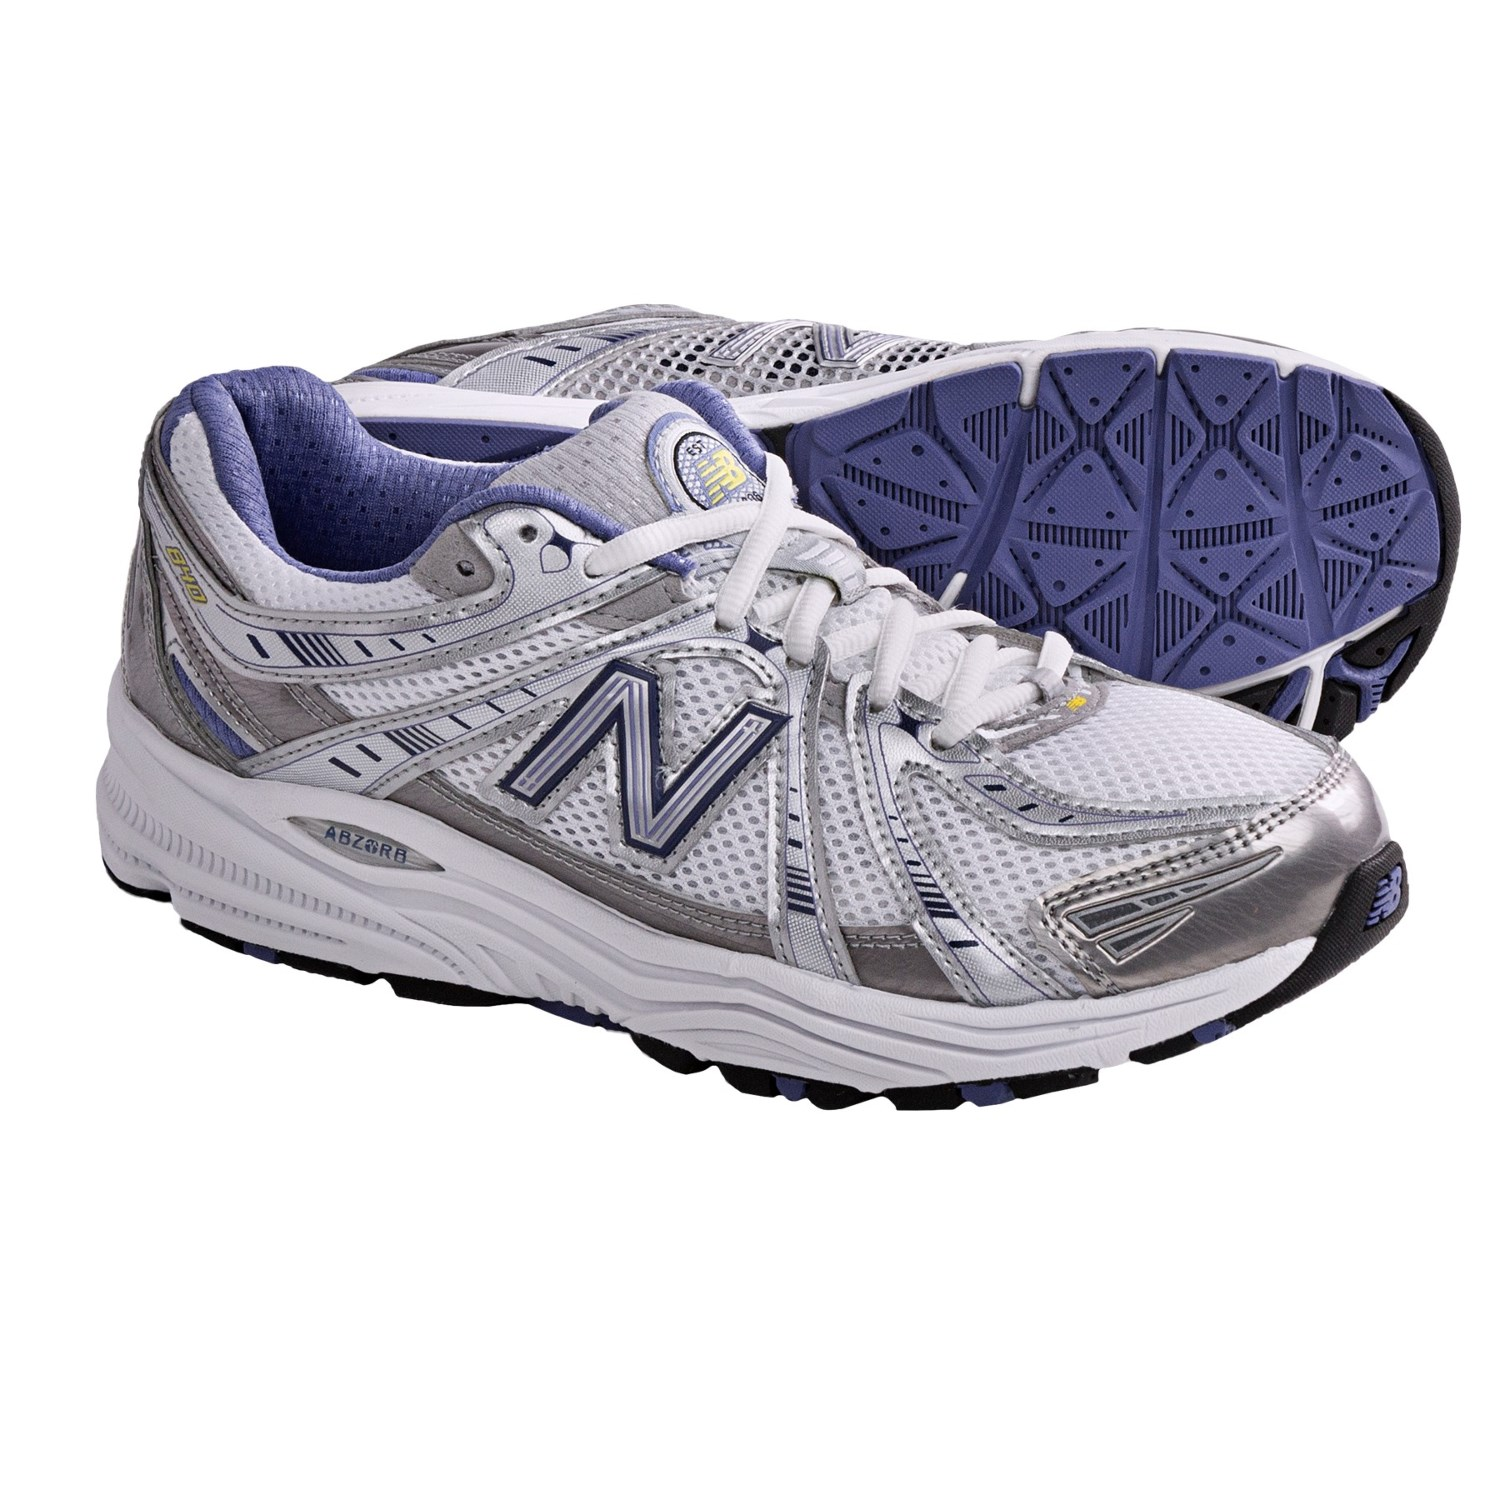 new balance 840 running shoes for 6145p save 30